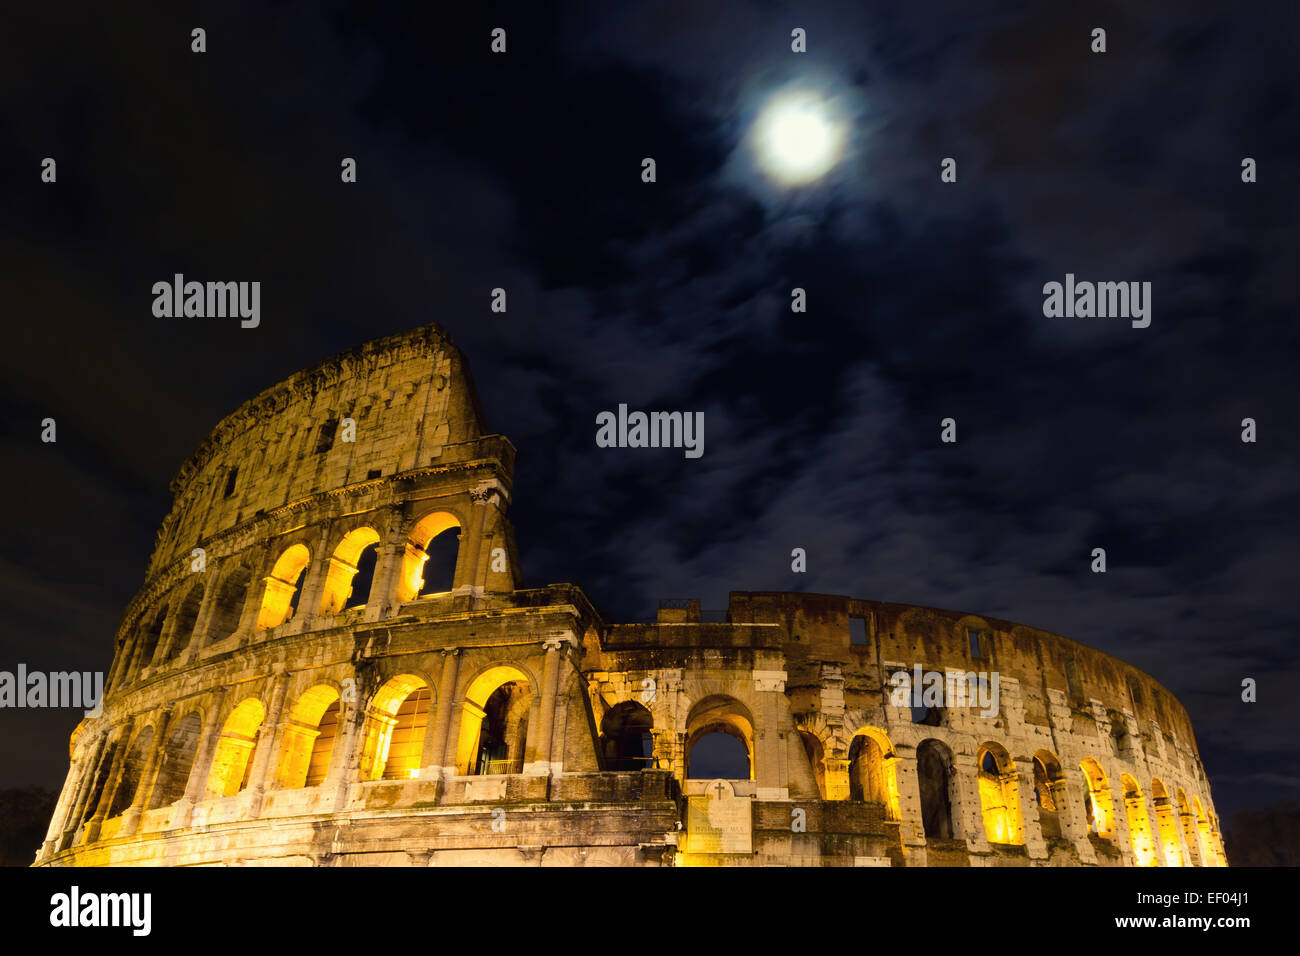 The Coliseum under the full moon, Rome, Italy - Stock Image